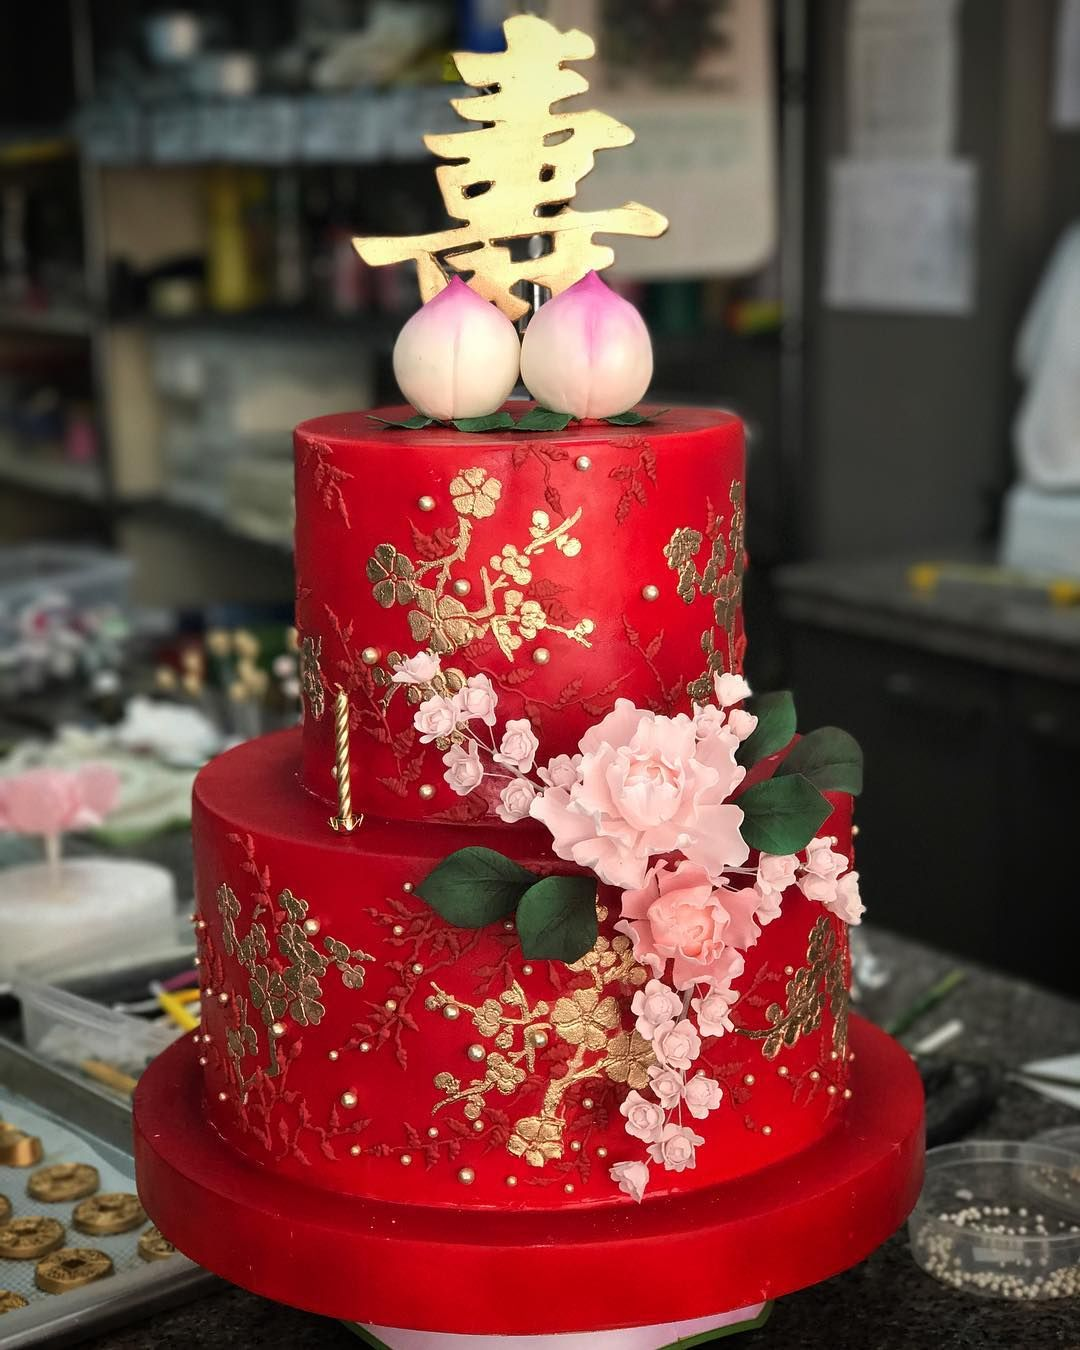 Chinese birthdays has a tradition where the celebrants